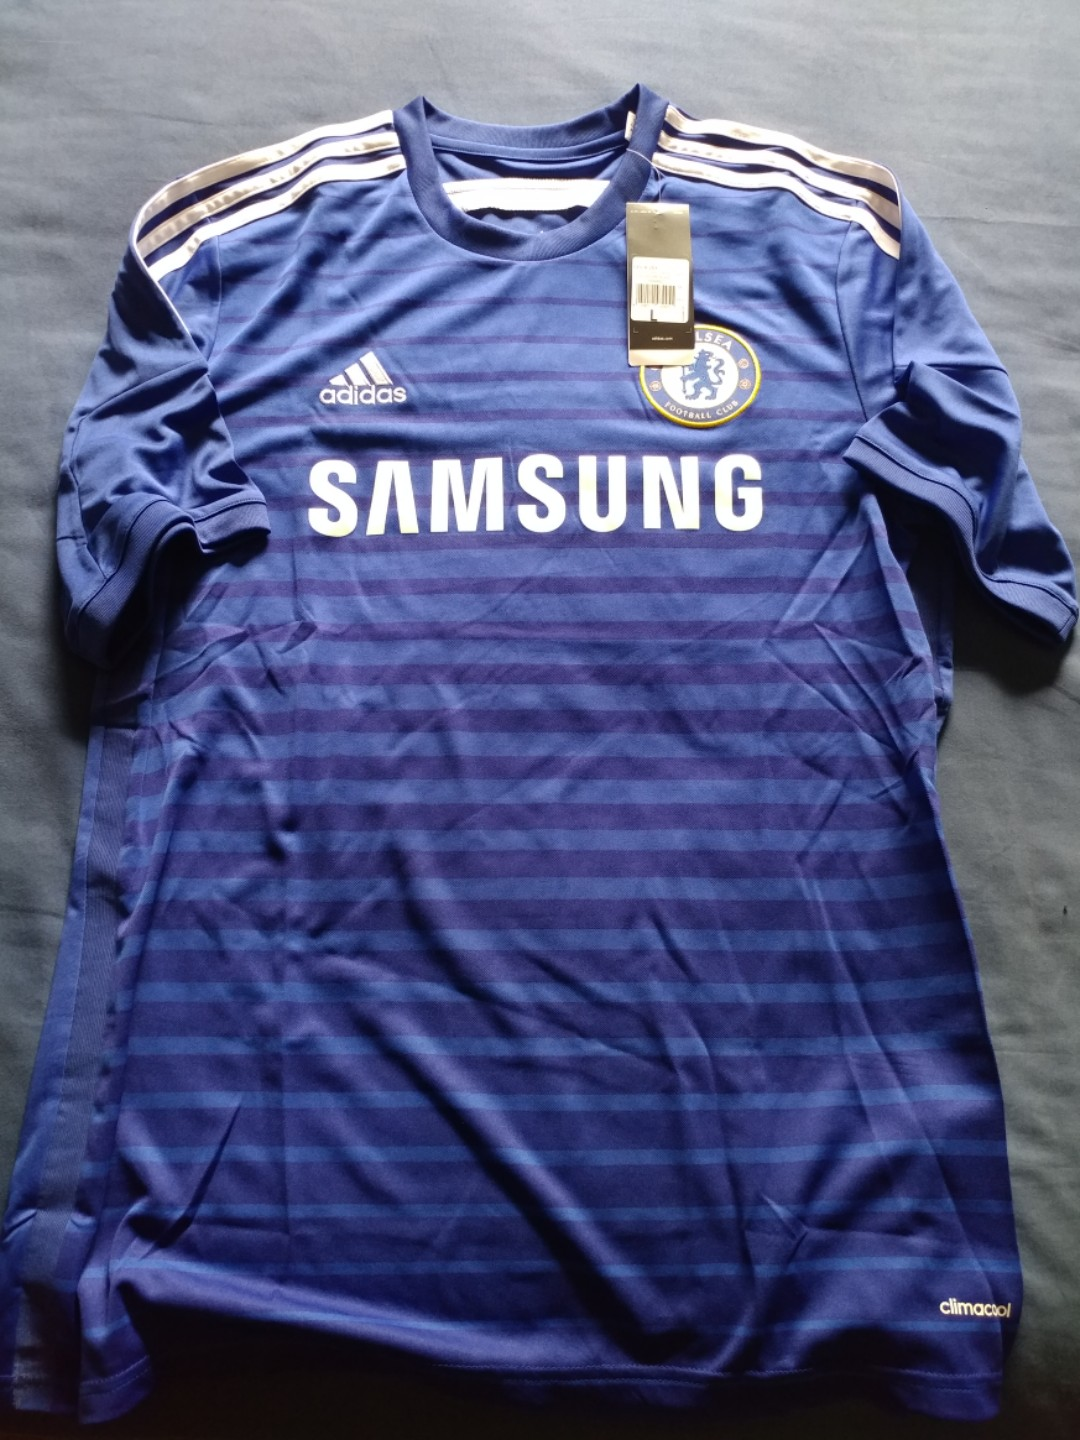 5d523c80c Authentic Chelsea Home Jersey, Sports, Sports Apparel on Carousell